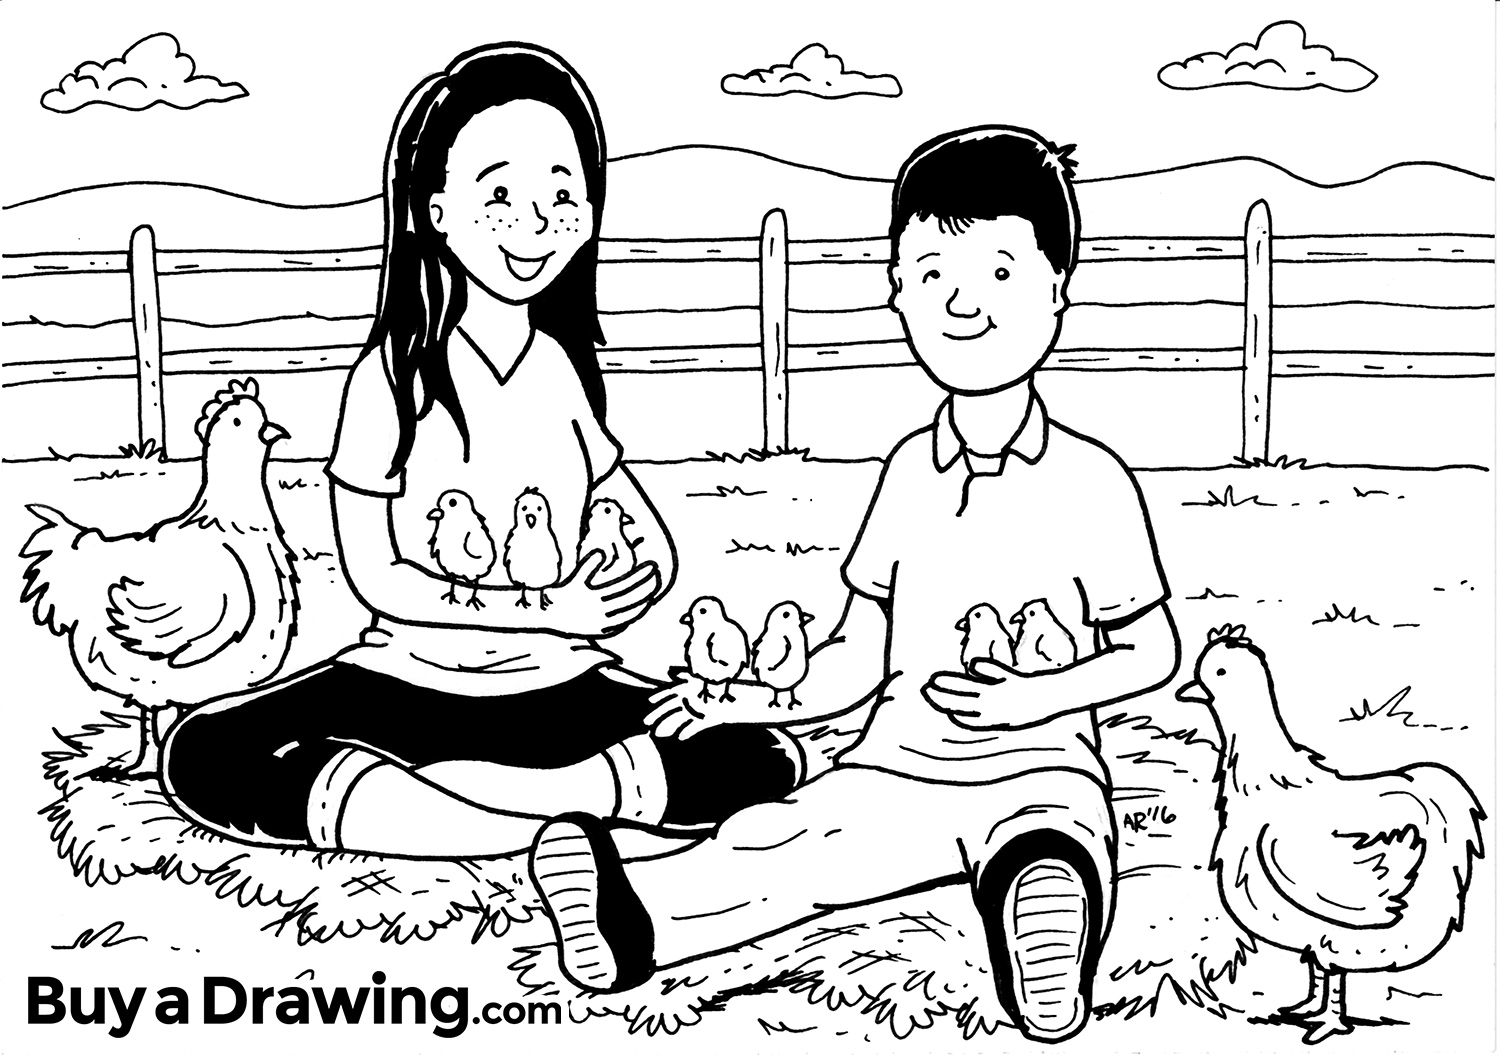 Custom Cartoon Portrait Drawing Of A Sister And Brother